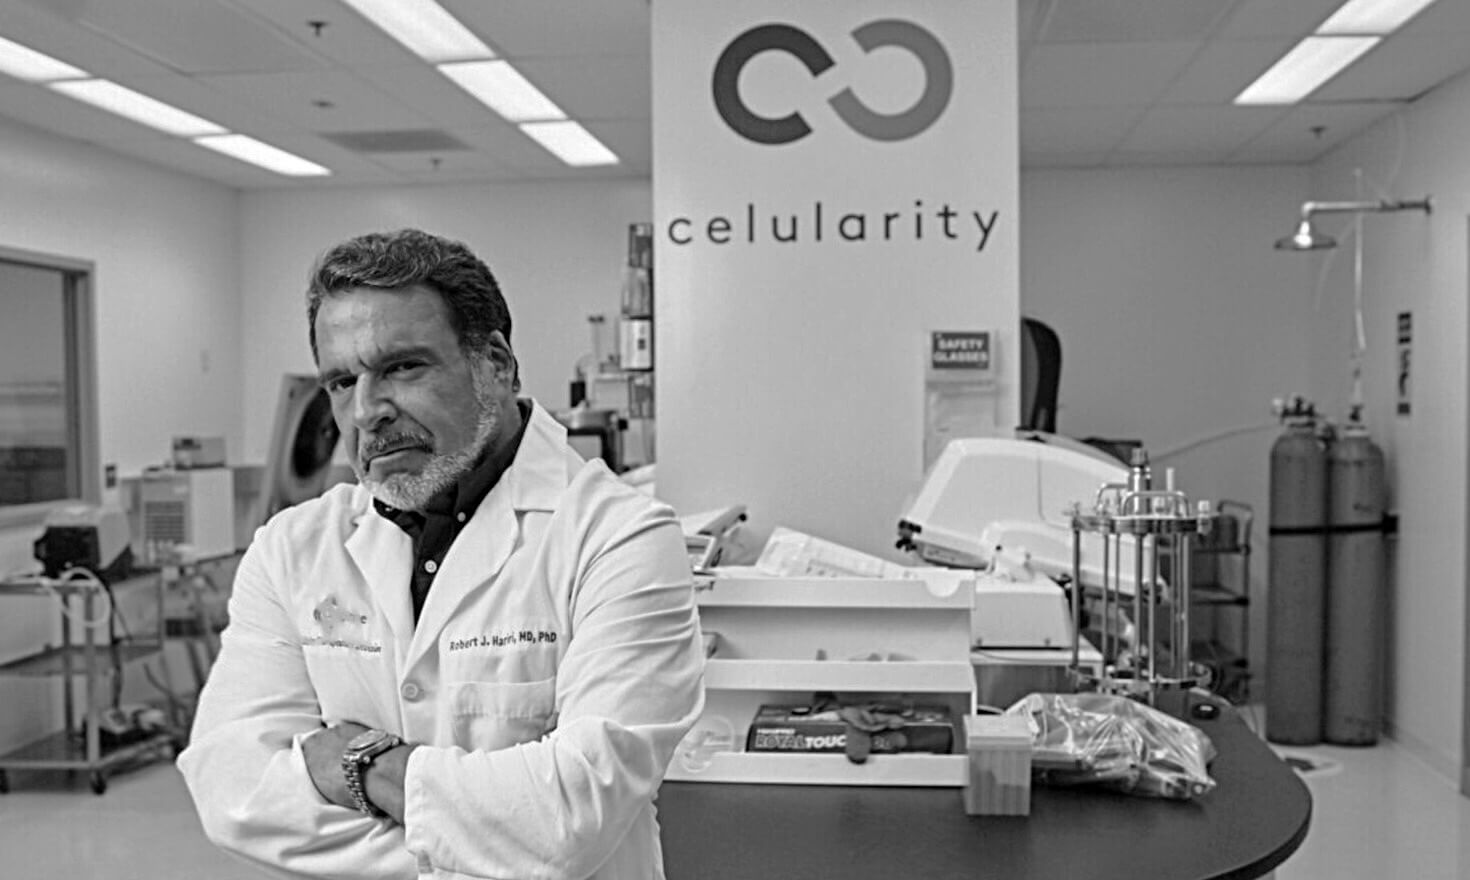 Photo of Celularity founder Robert Hariri.